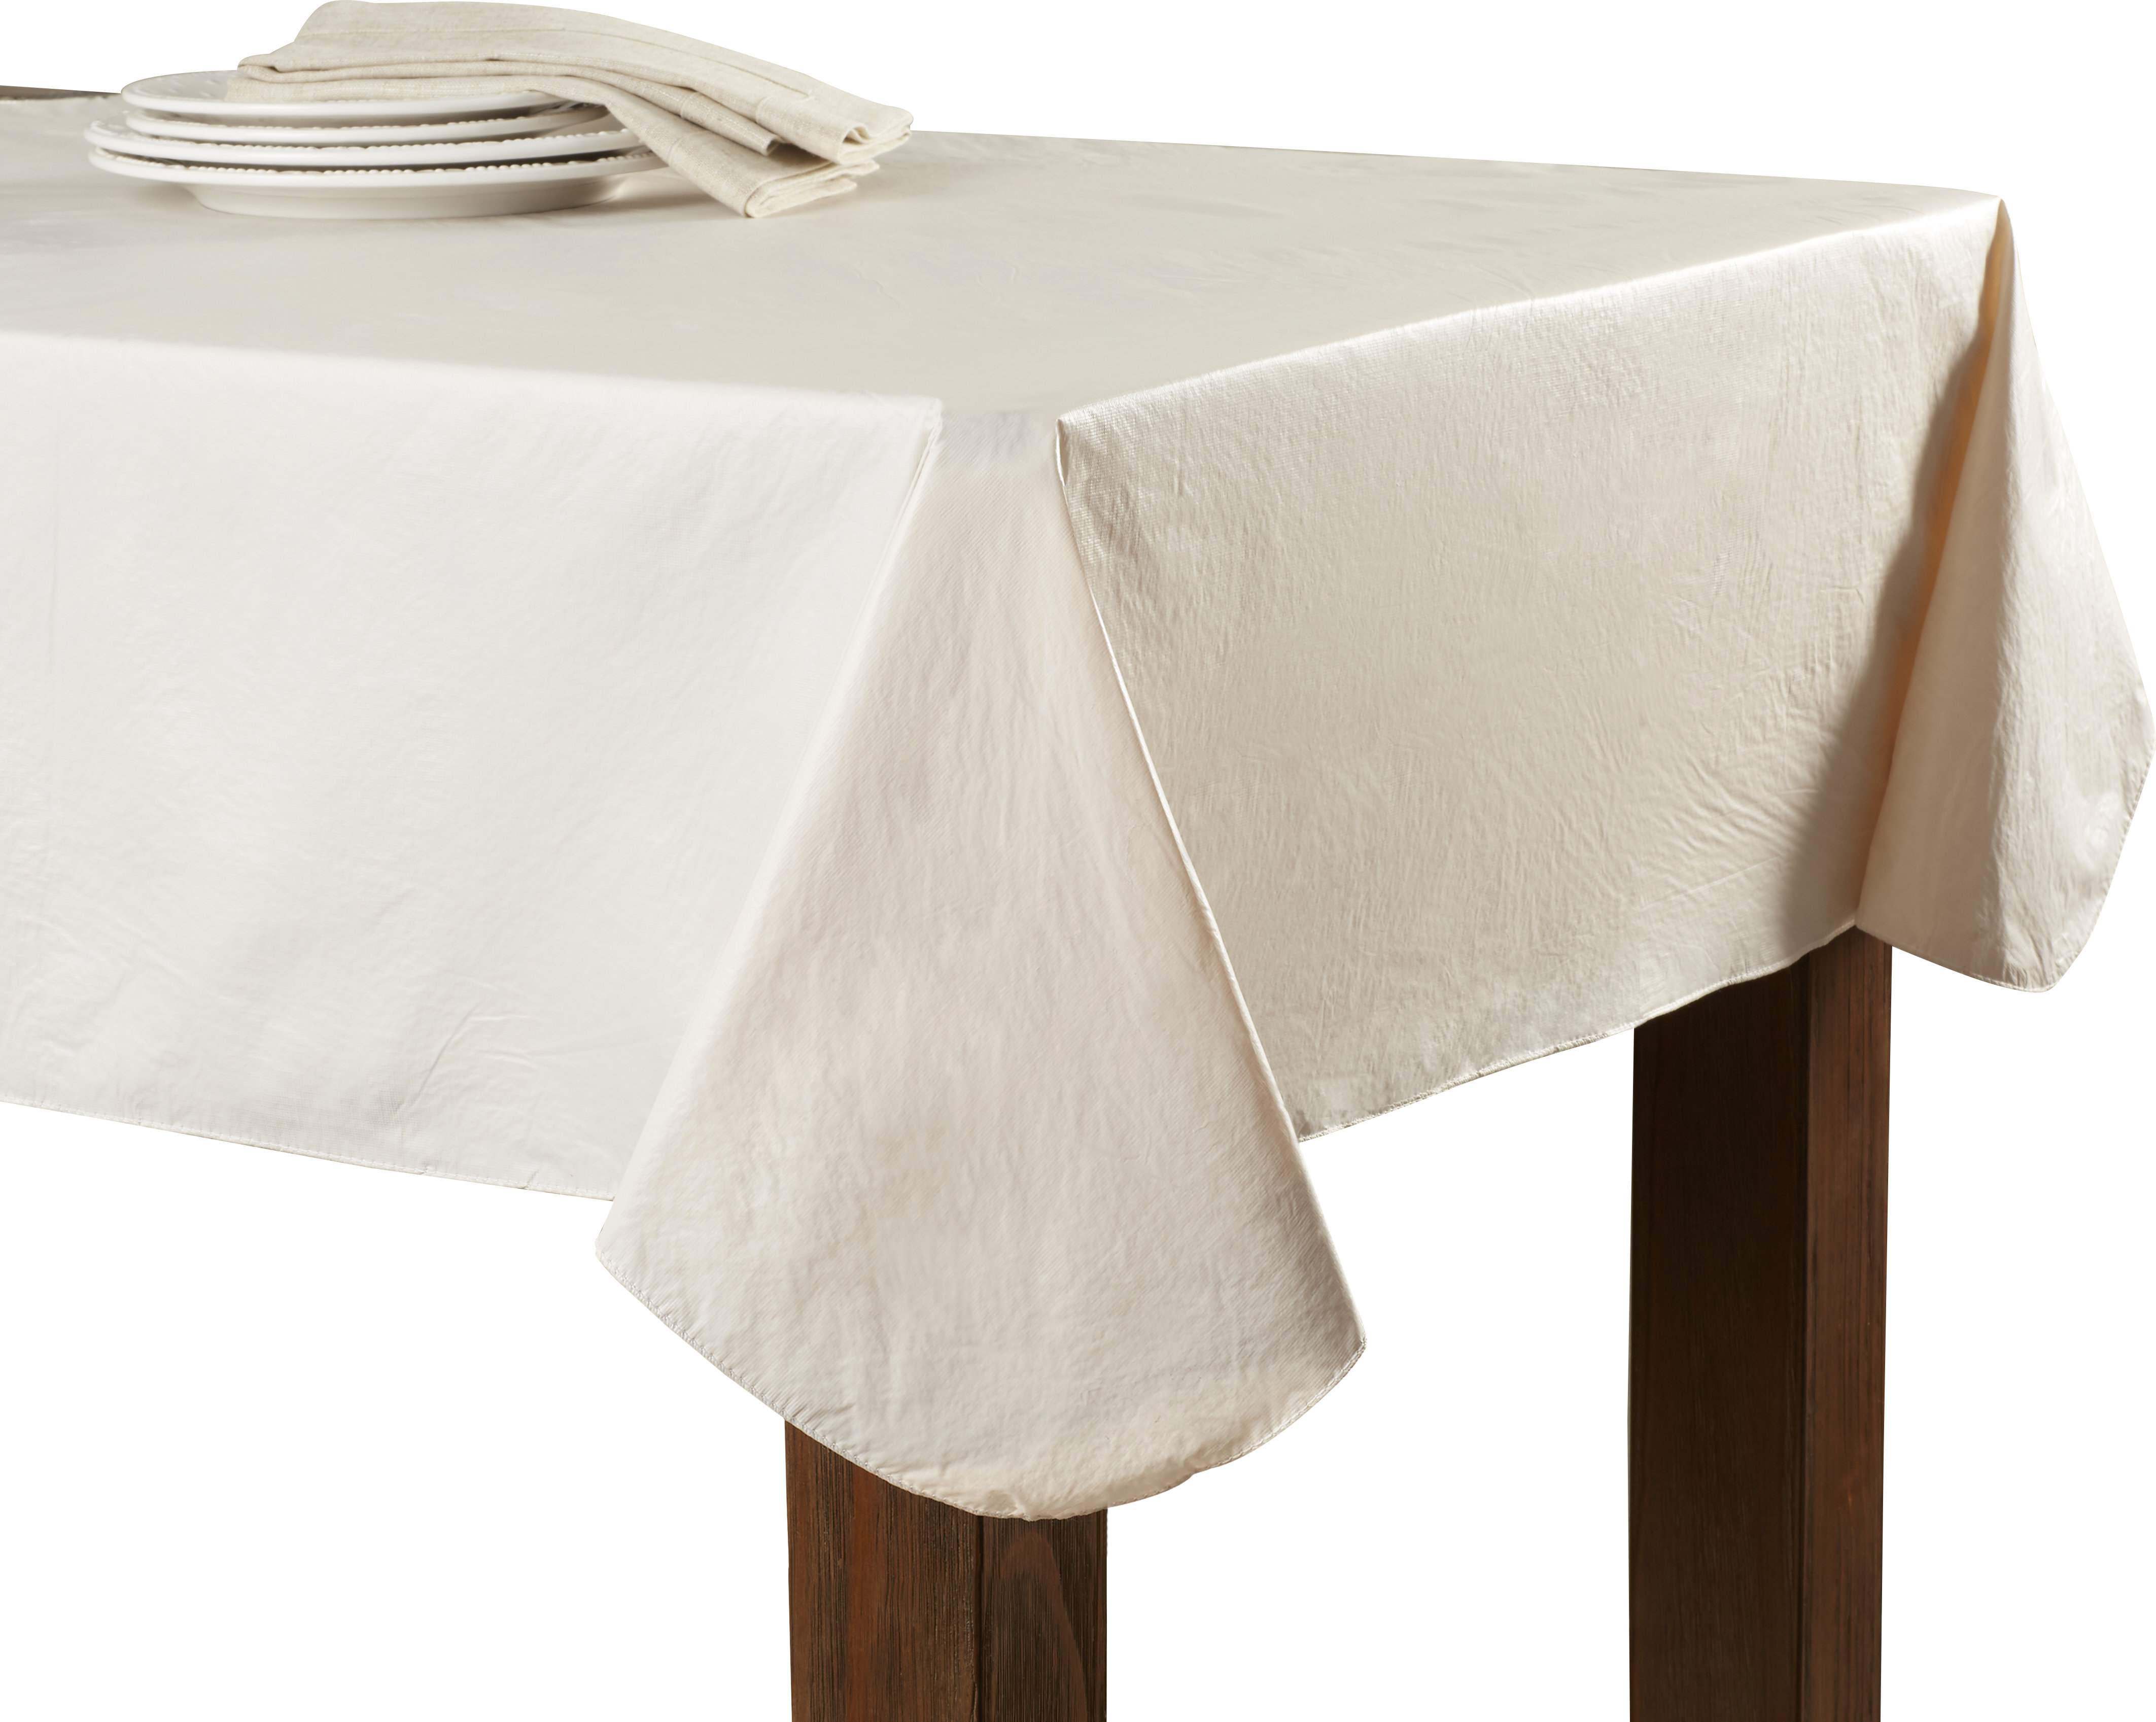 symple stuff vinyl flannel backed tablecloth reviews round accent runner rugs metal top end table unwanted furniture outdoor garden white patio small teak side ikea living room